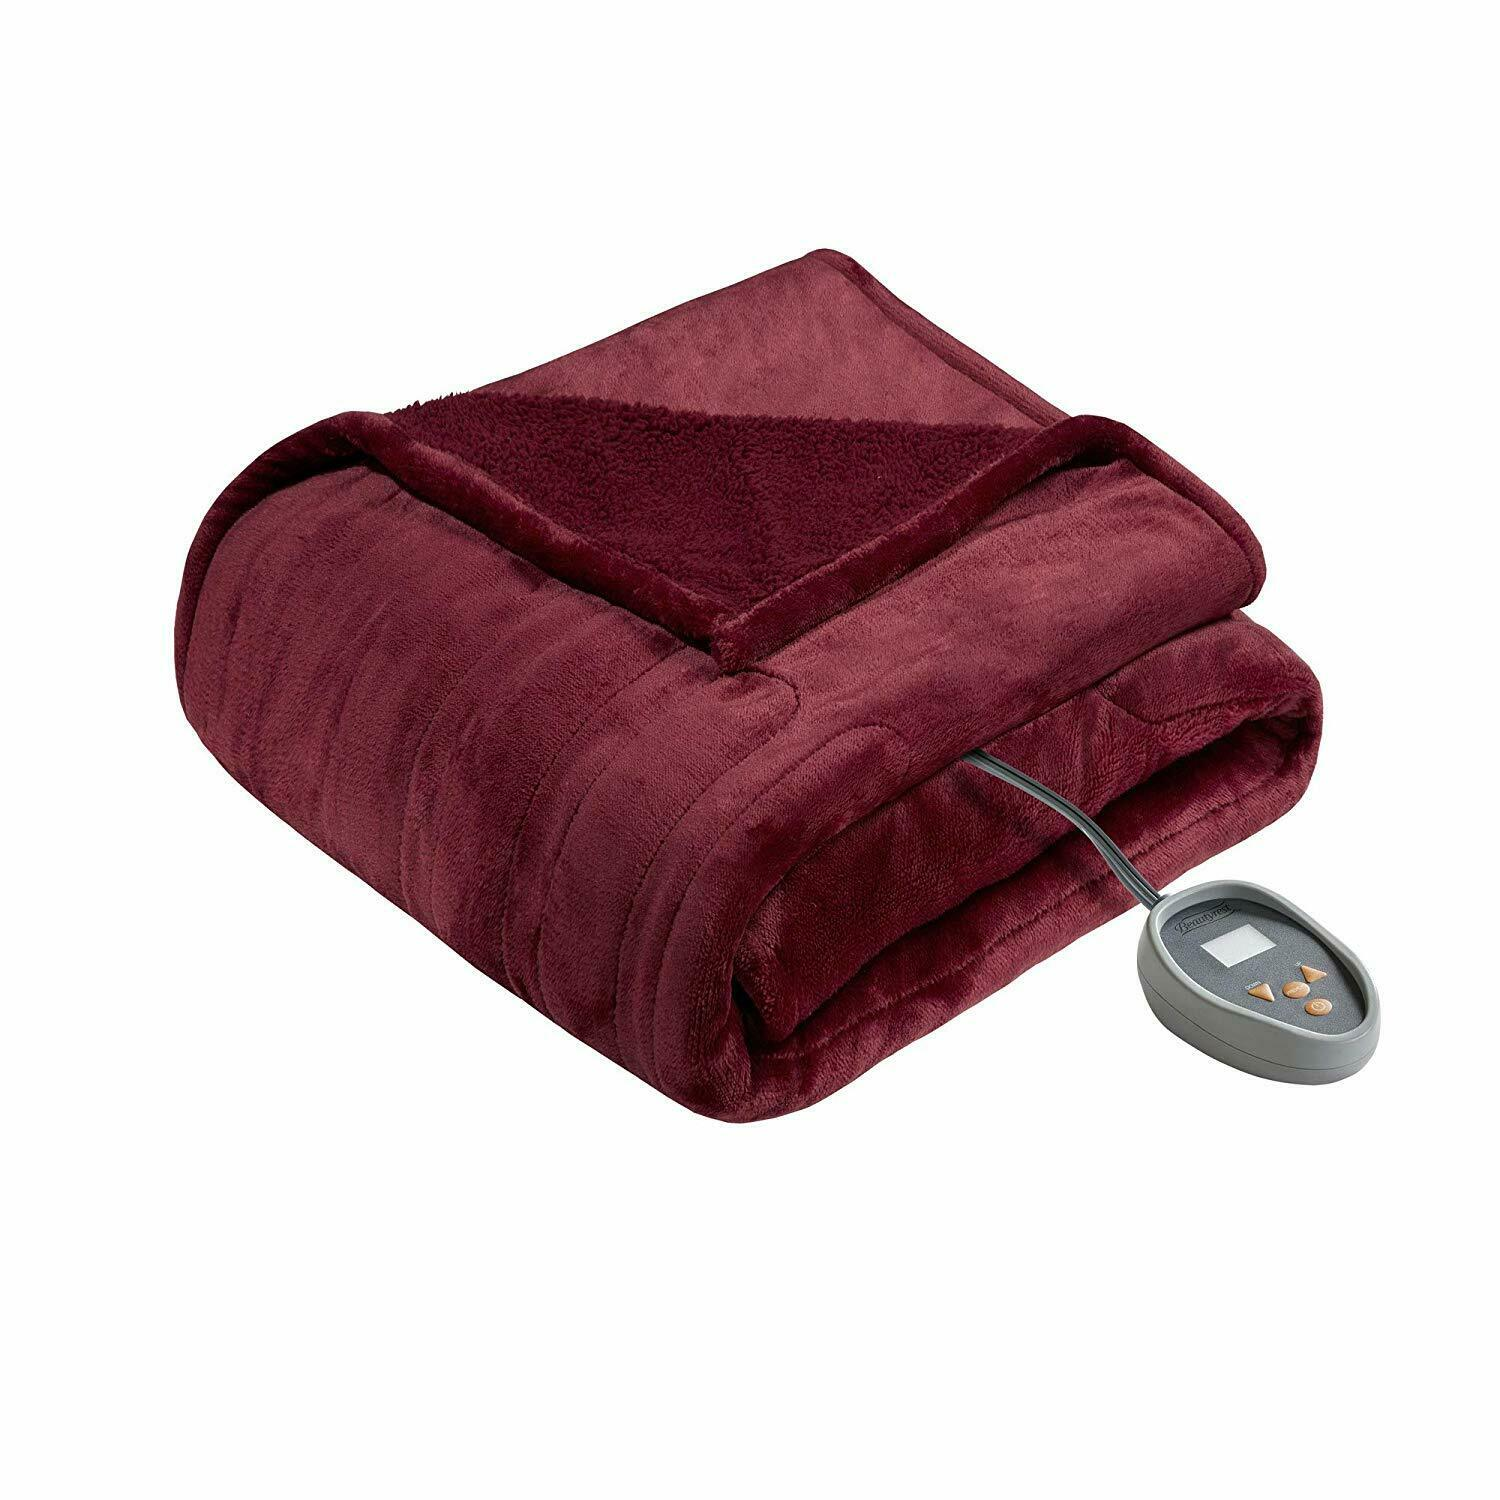 Beautyrest Red Electric Blanket with Two 20 Heat Level Setting Controllers